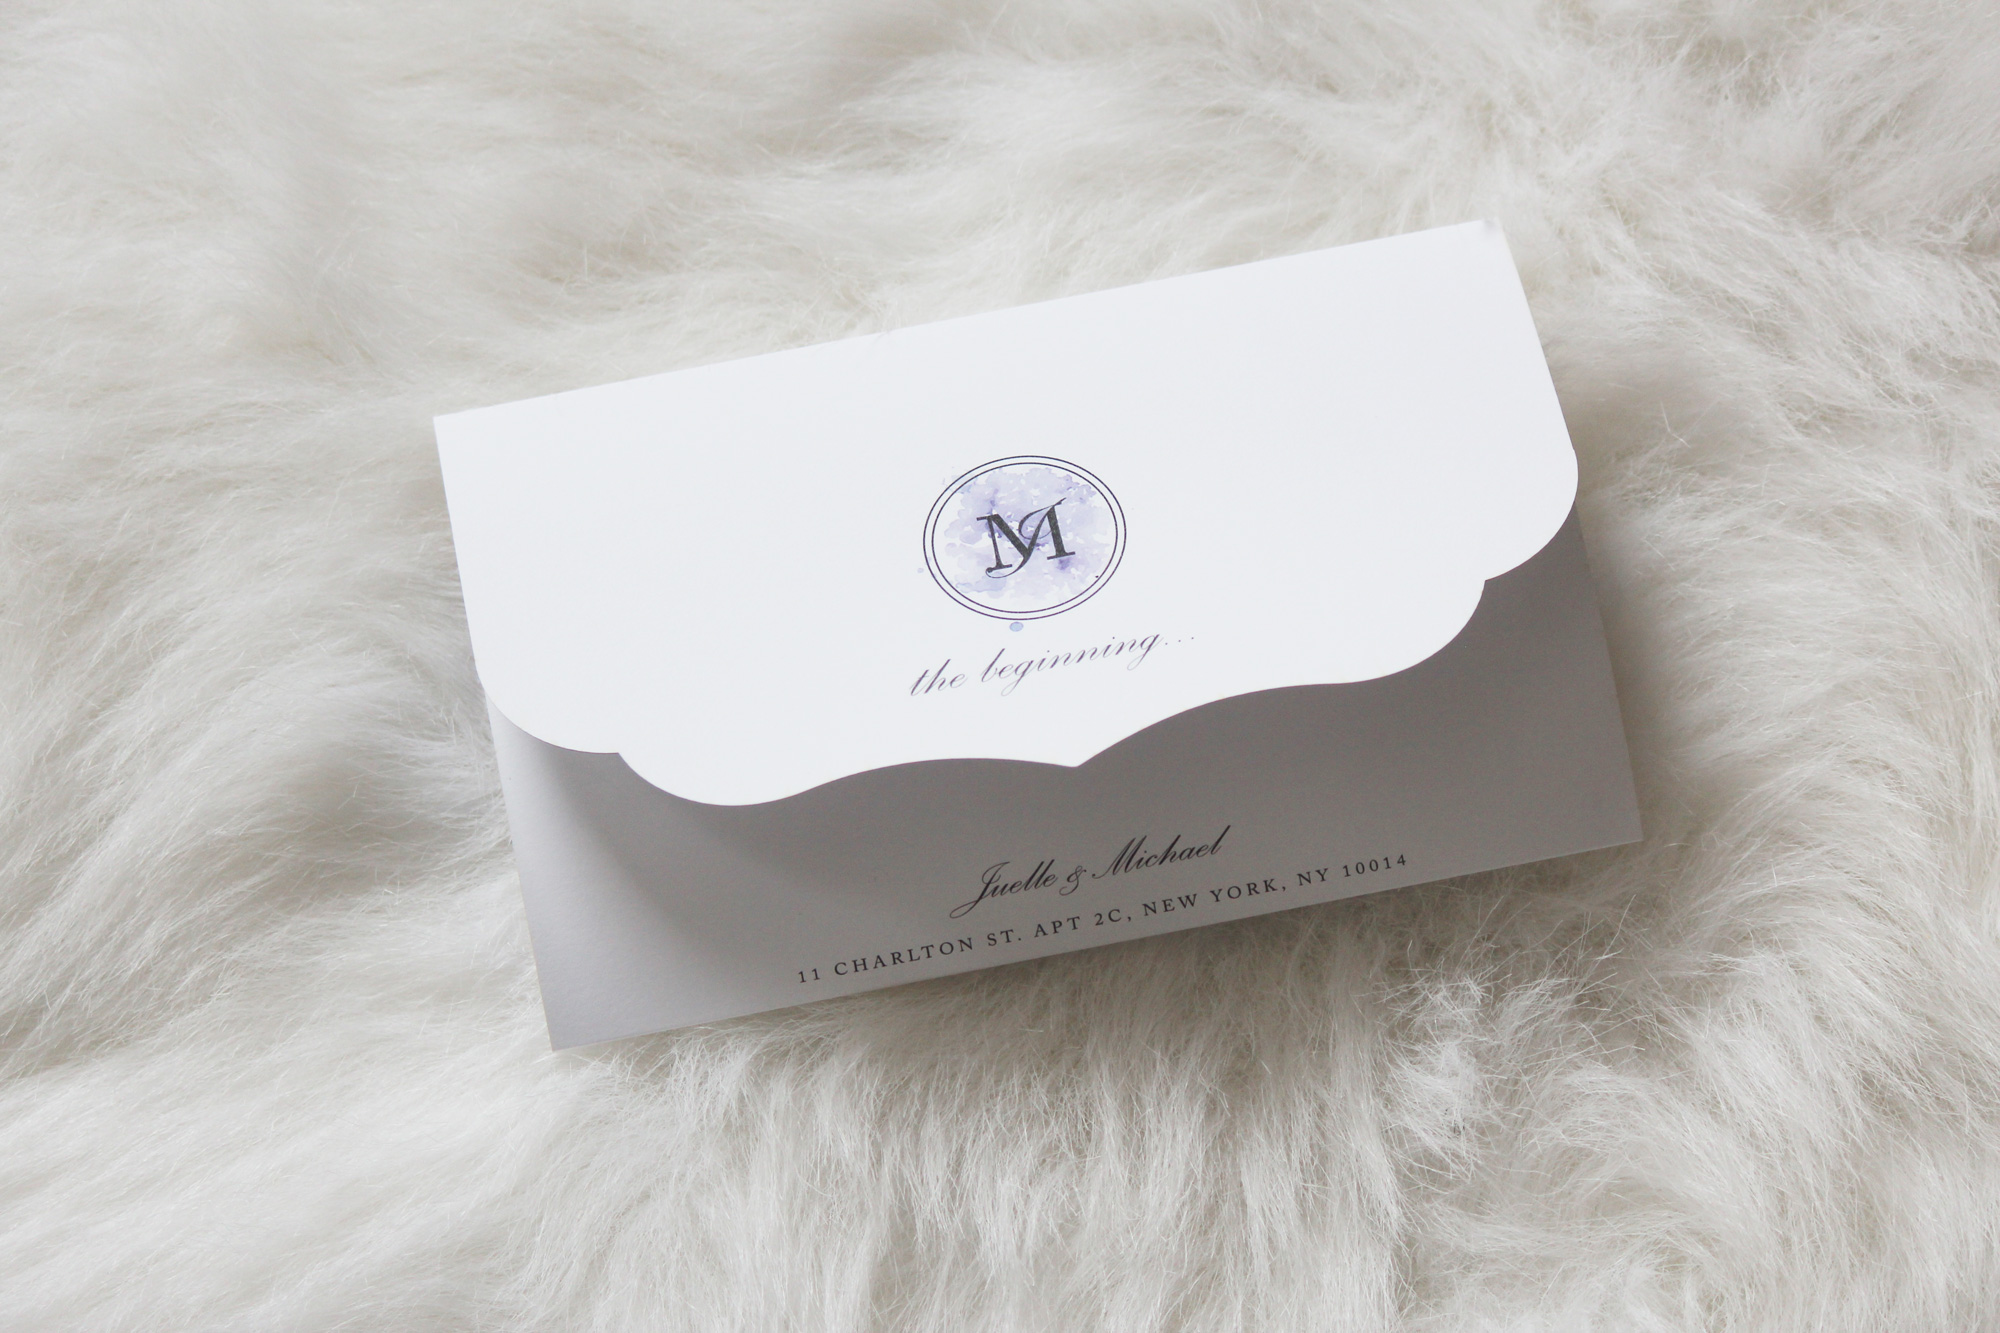 juelle&Michael-wedding-invite